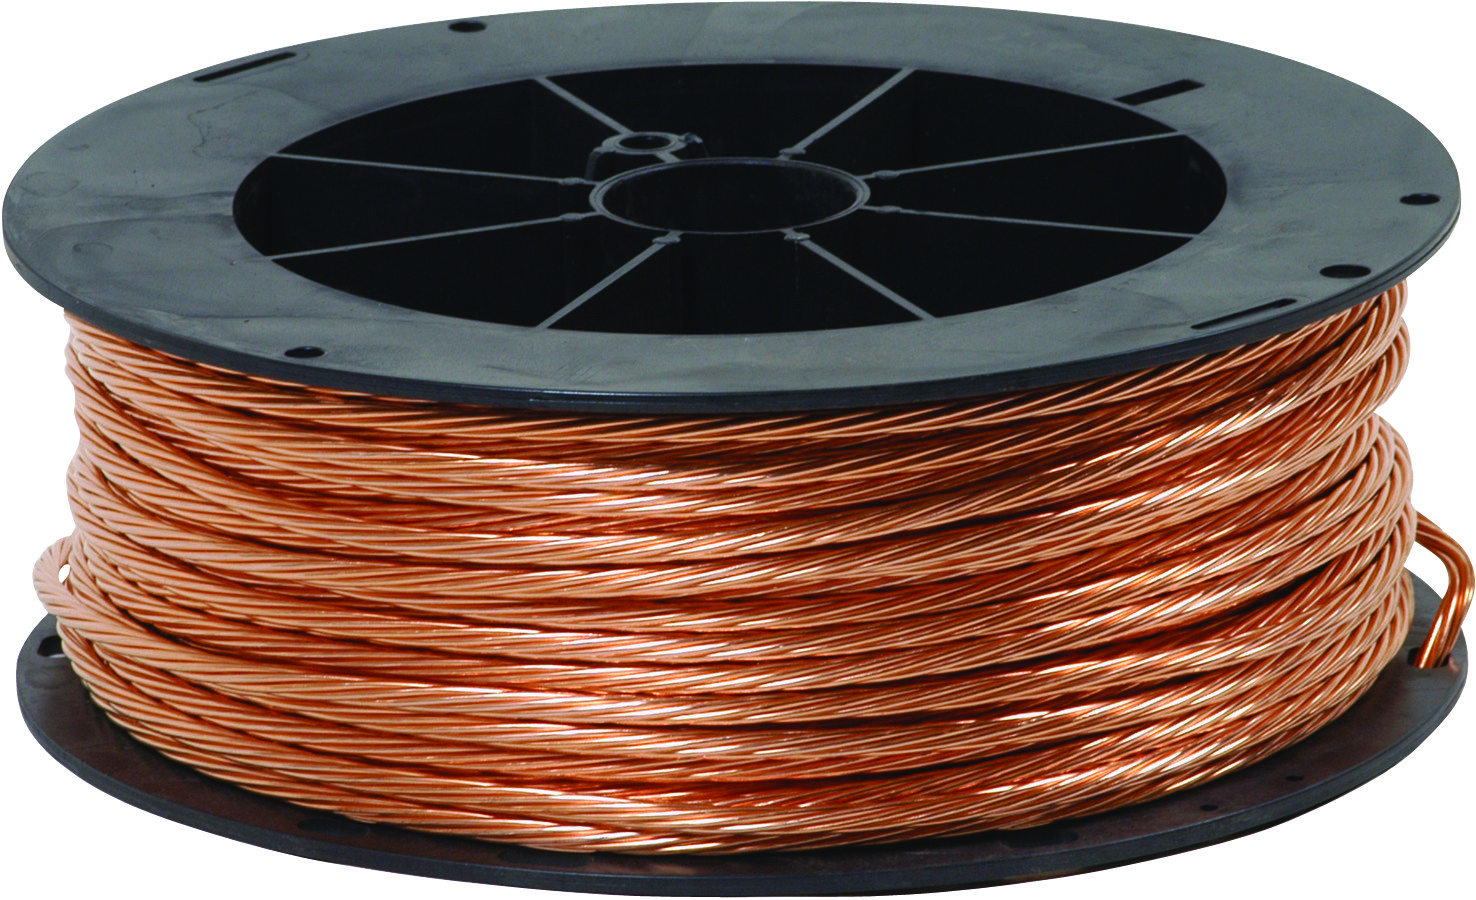 Electrical Lighting Building Specialty Wire Cable Rolls Bare Copper Ground Wire Southwire 4strdx200bare  Gauge Stranded Bare Copper Wire